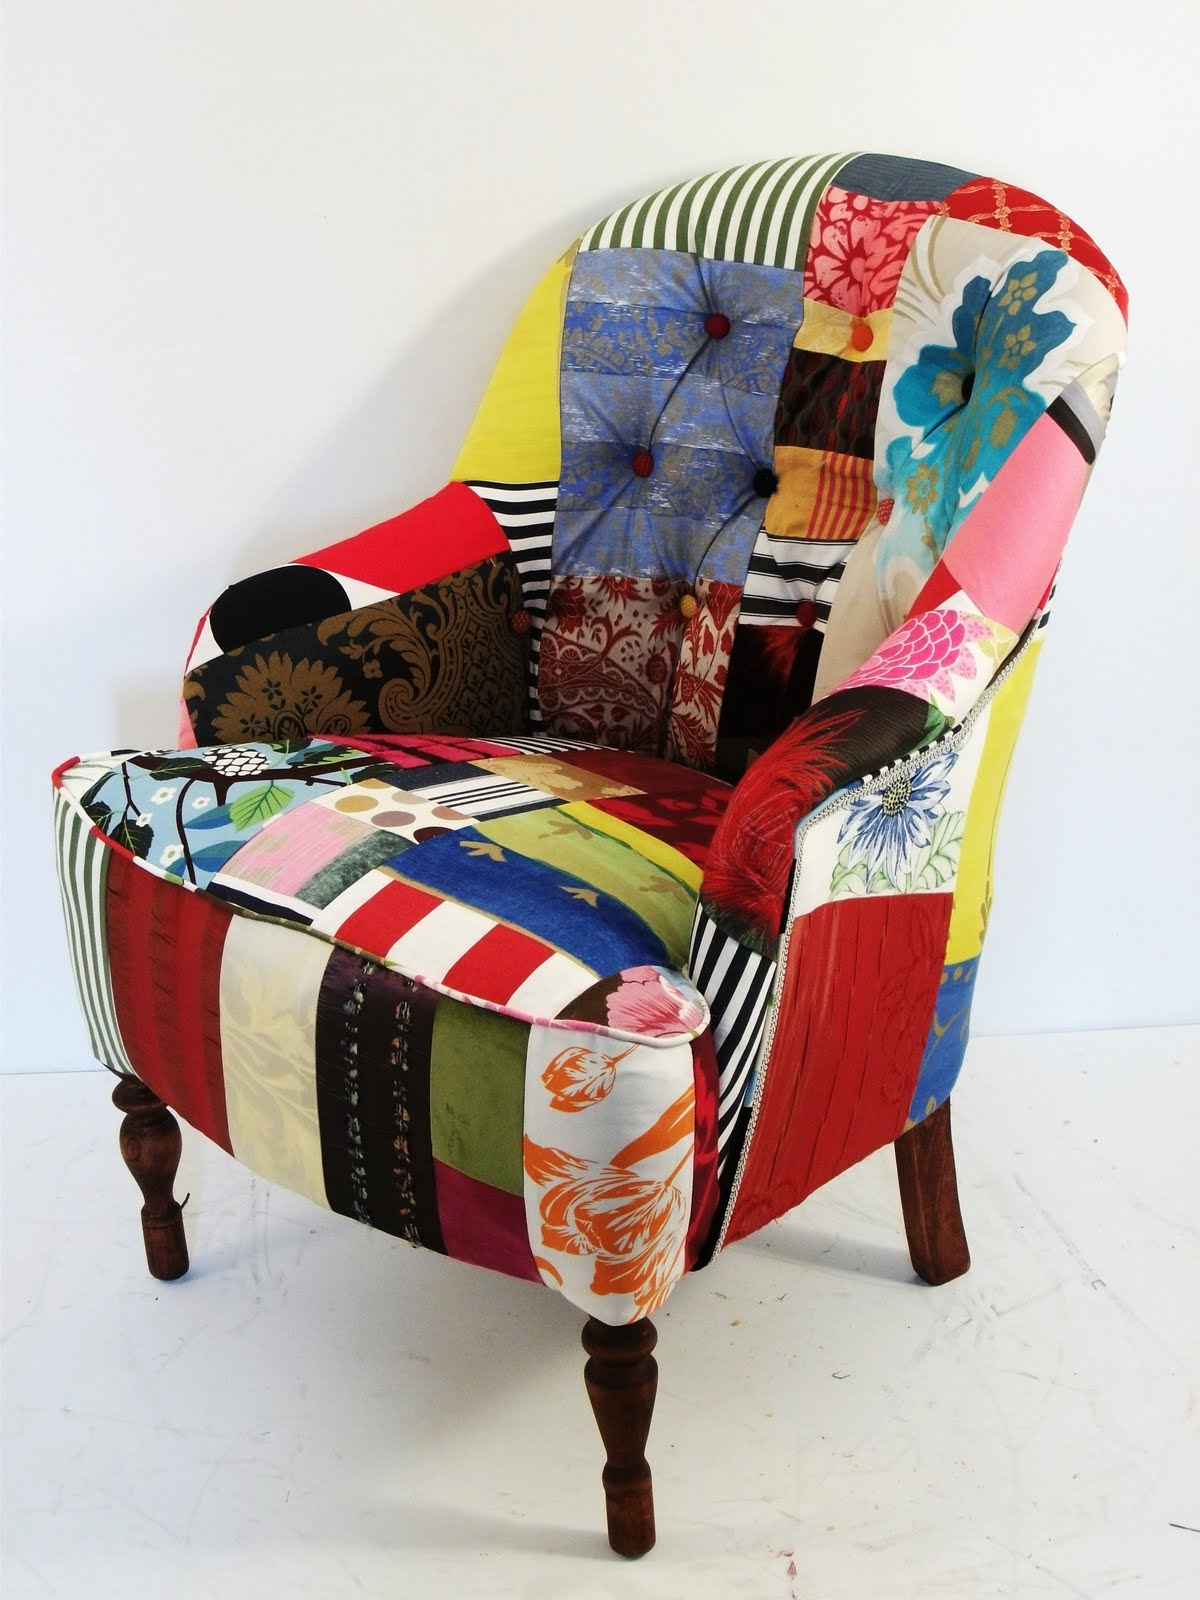 Google Image, Patchwork Items, Chairs Patchwork, Image ...